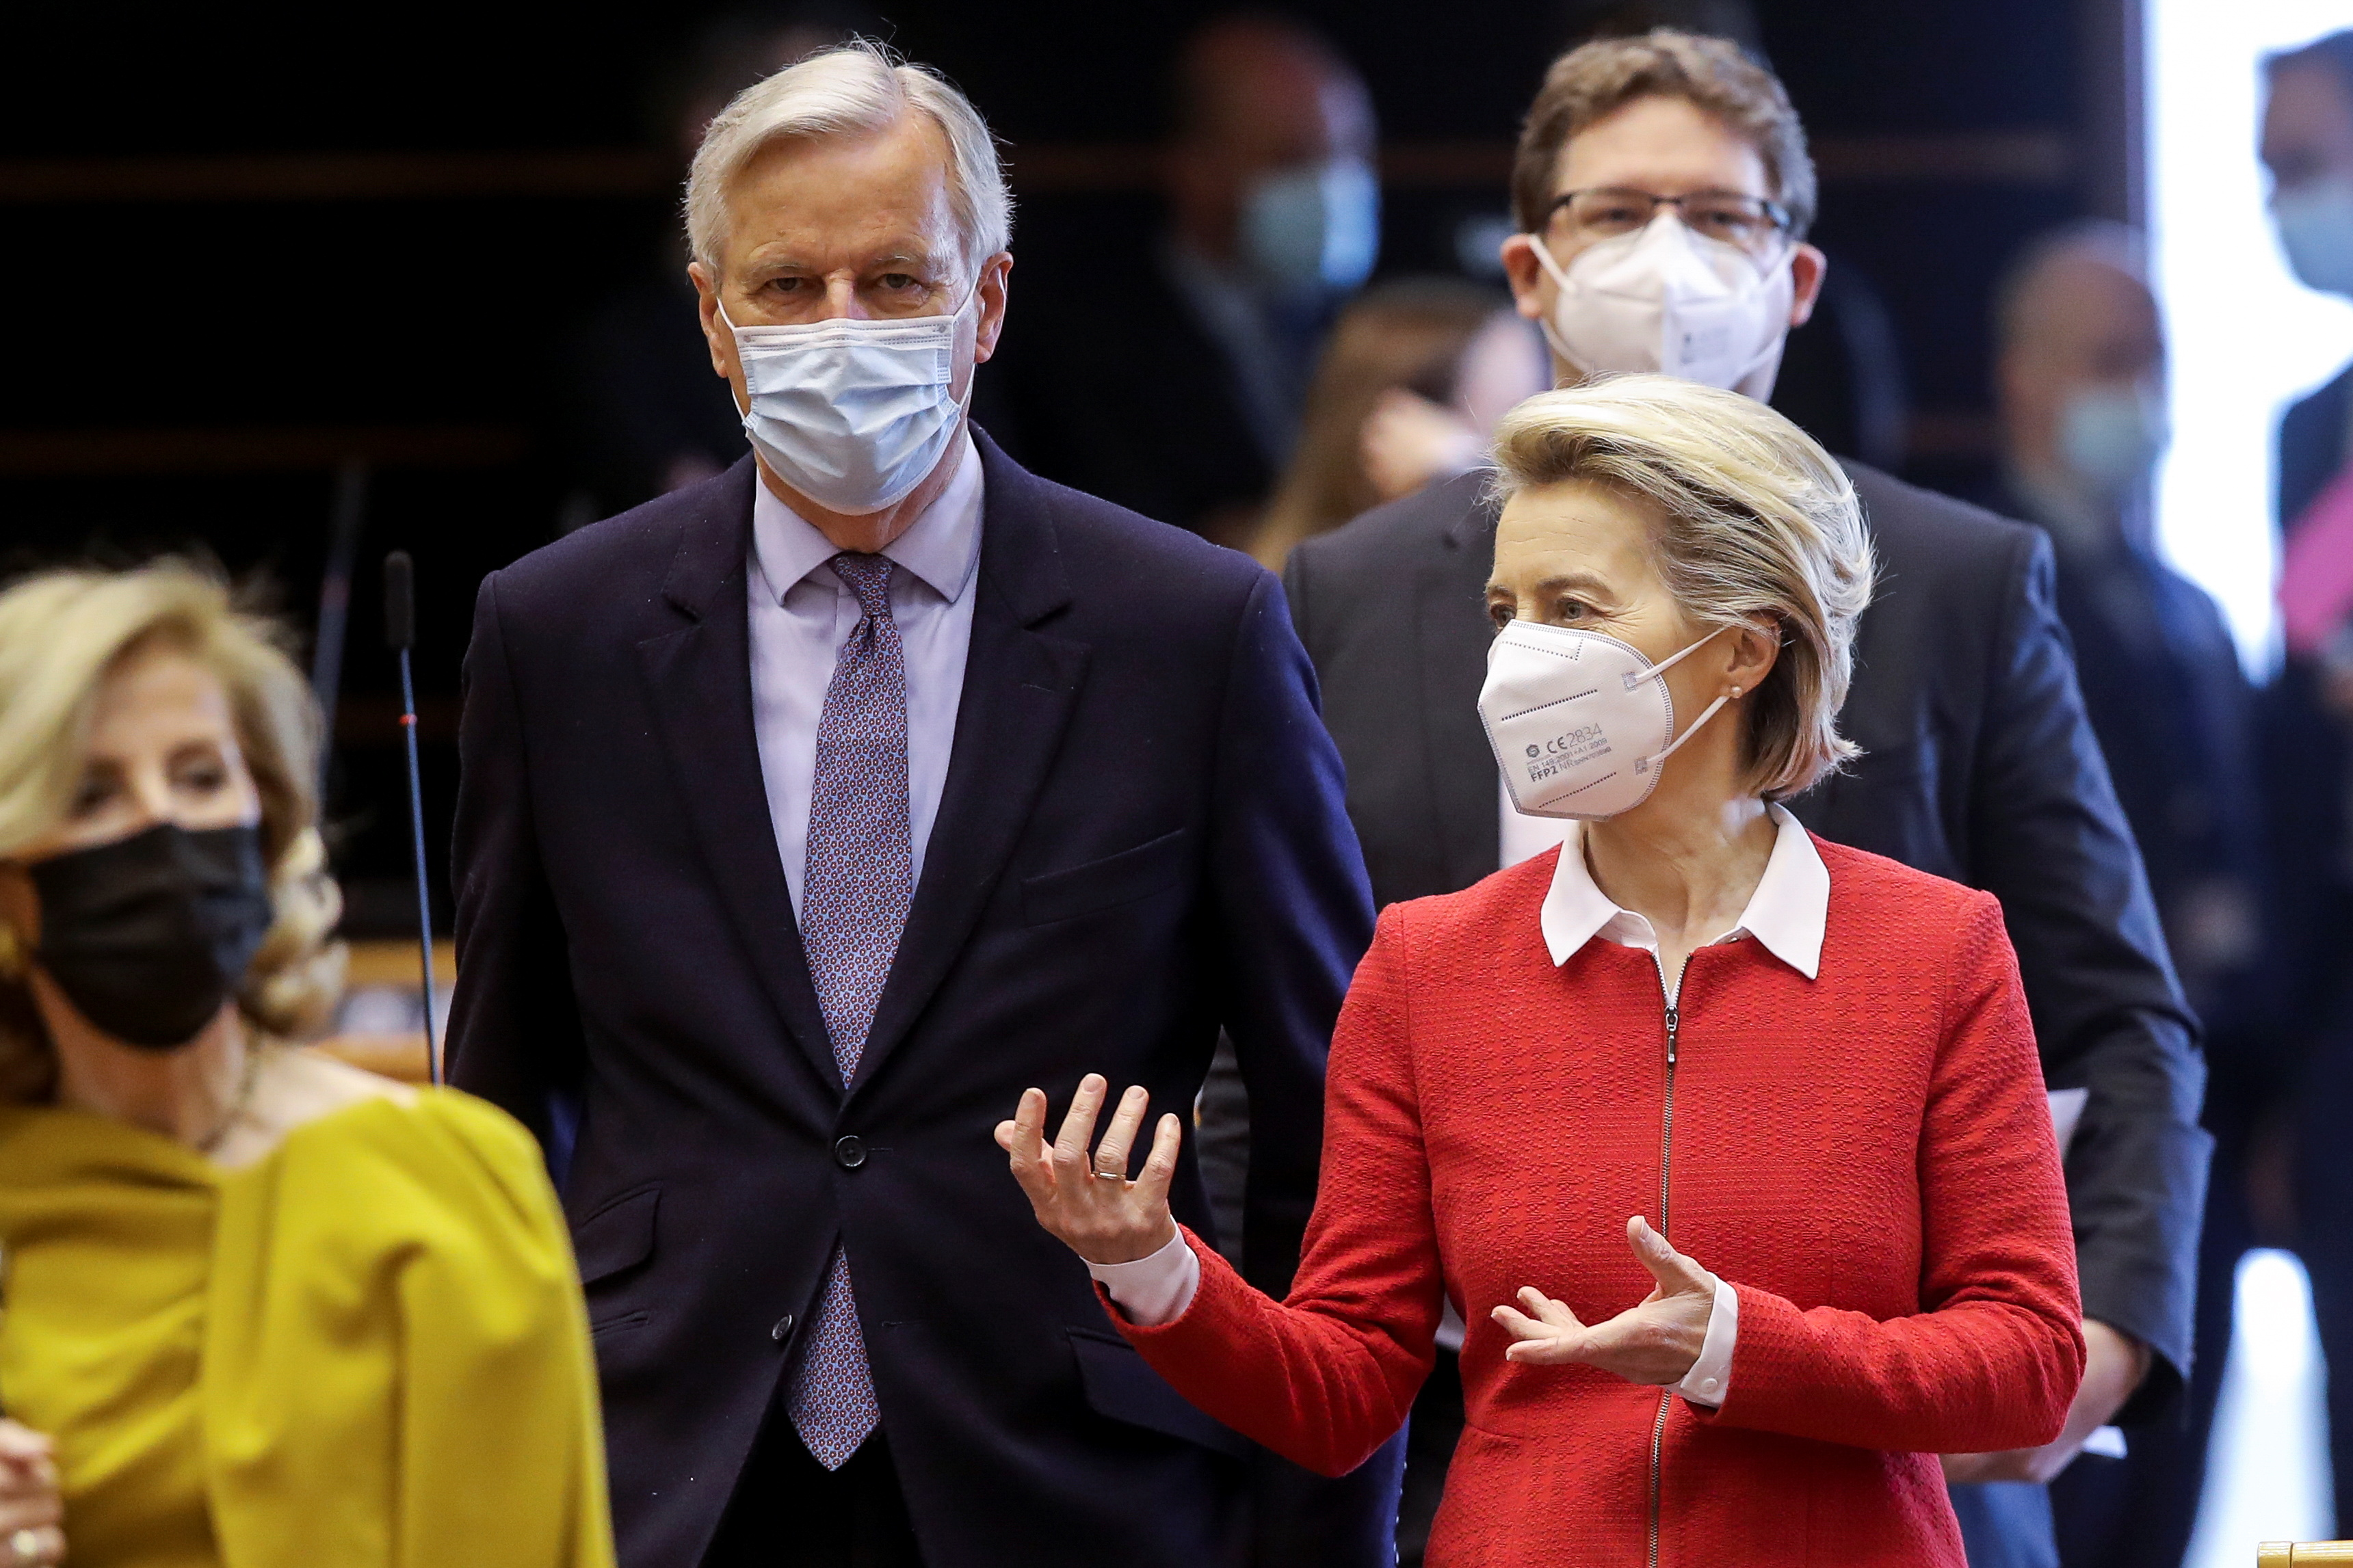 European Commission President Ursula von der Leyen and Head of the Task Force for Relations with the UK, Michel Barnier attend the debate on EU-UK trade and cooperation agreement during the second day of a plenary session at the European Parliament in Brussels, Belgium April 27, 2021. Olivier Hoslet/Pool via REUTERS